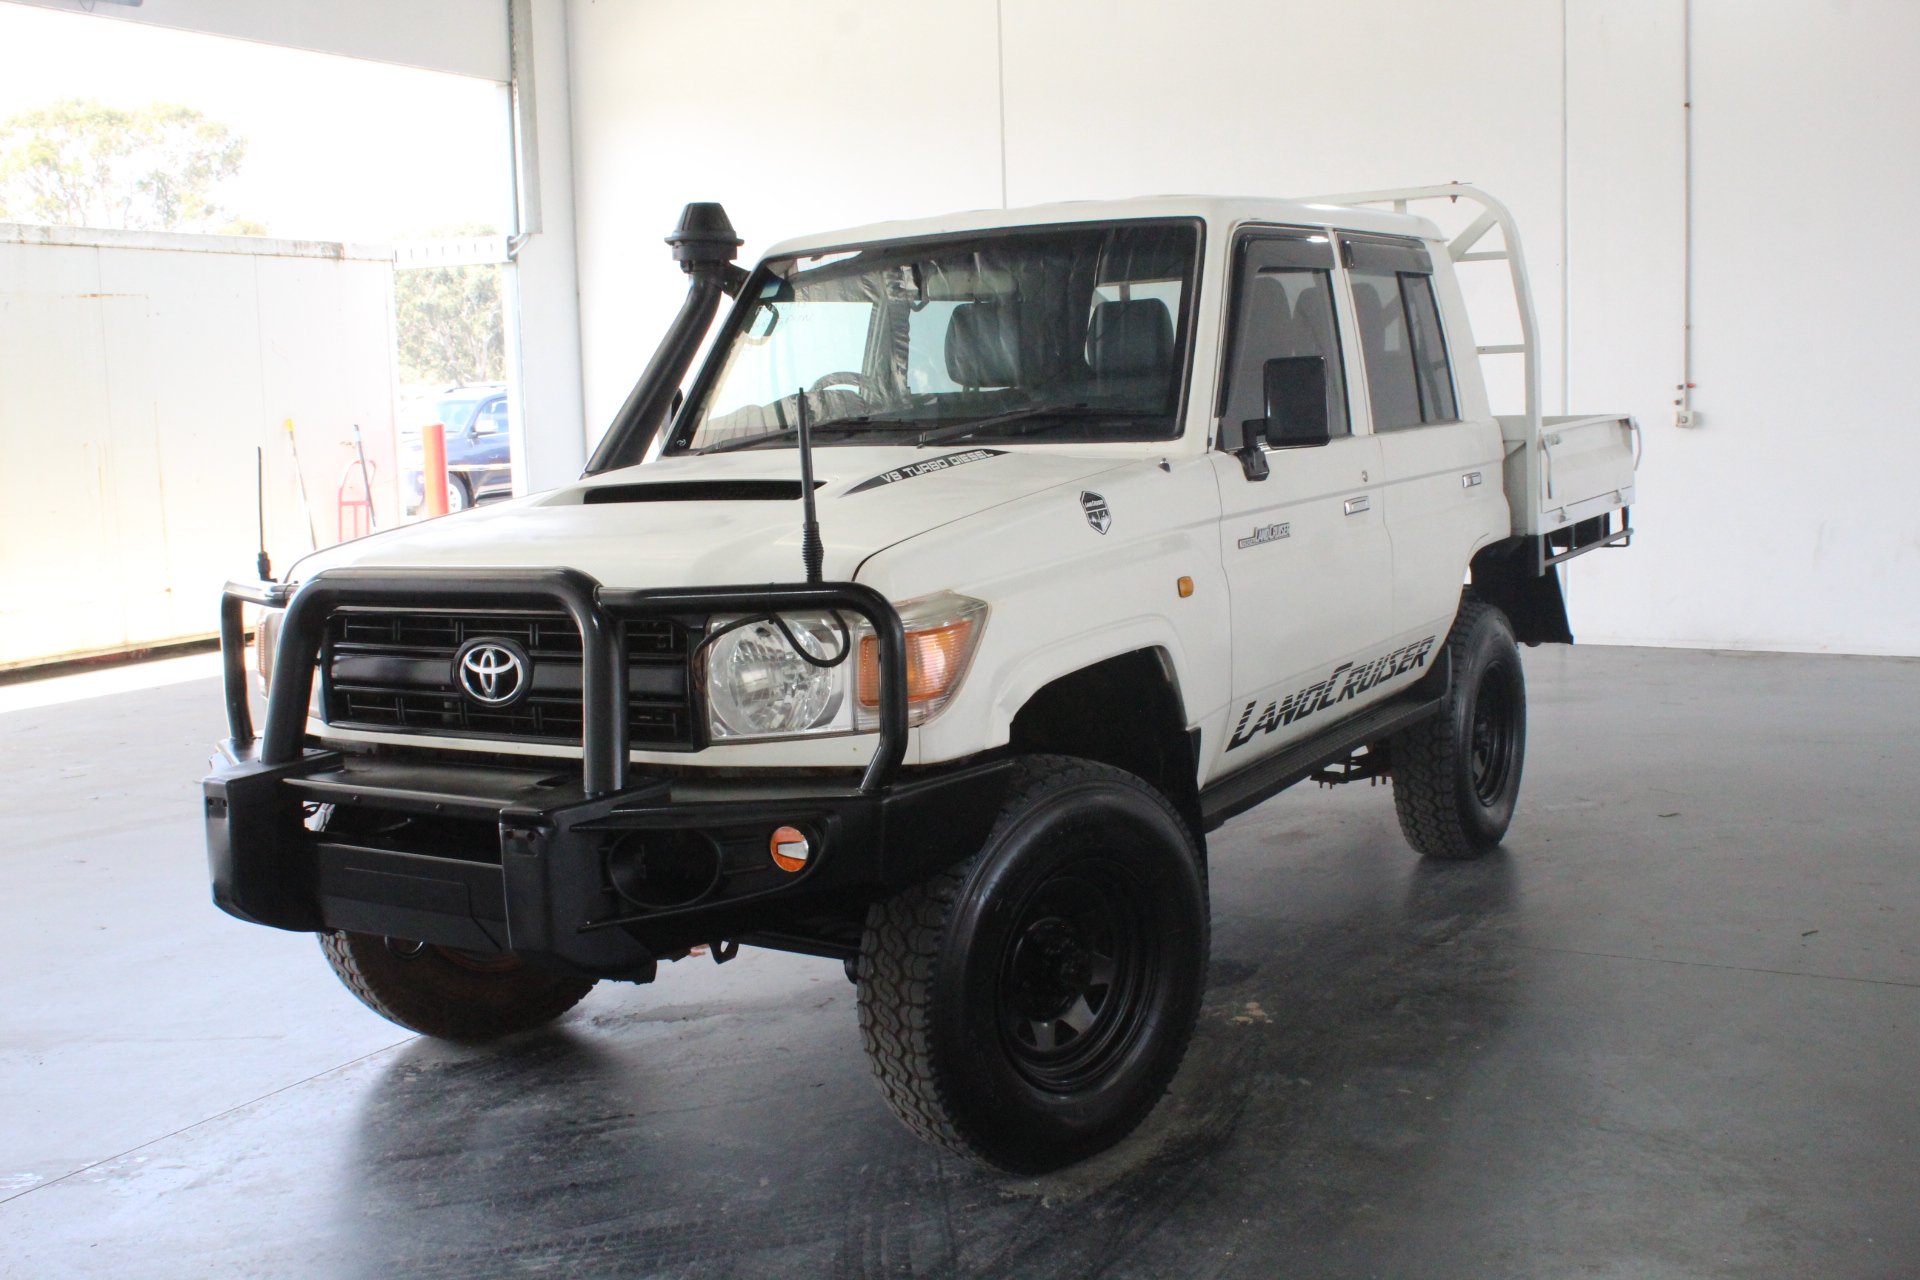 2011 Toyota Landcruiser Workmate (4x4) VDJ76R Turbo Diesel Manual Wagon